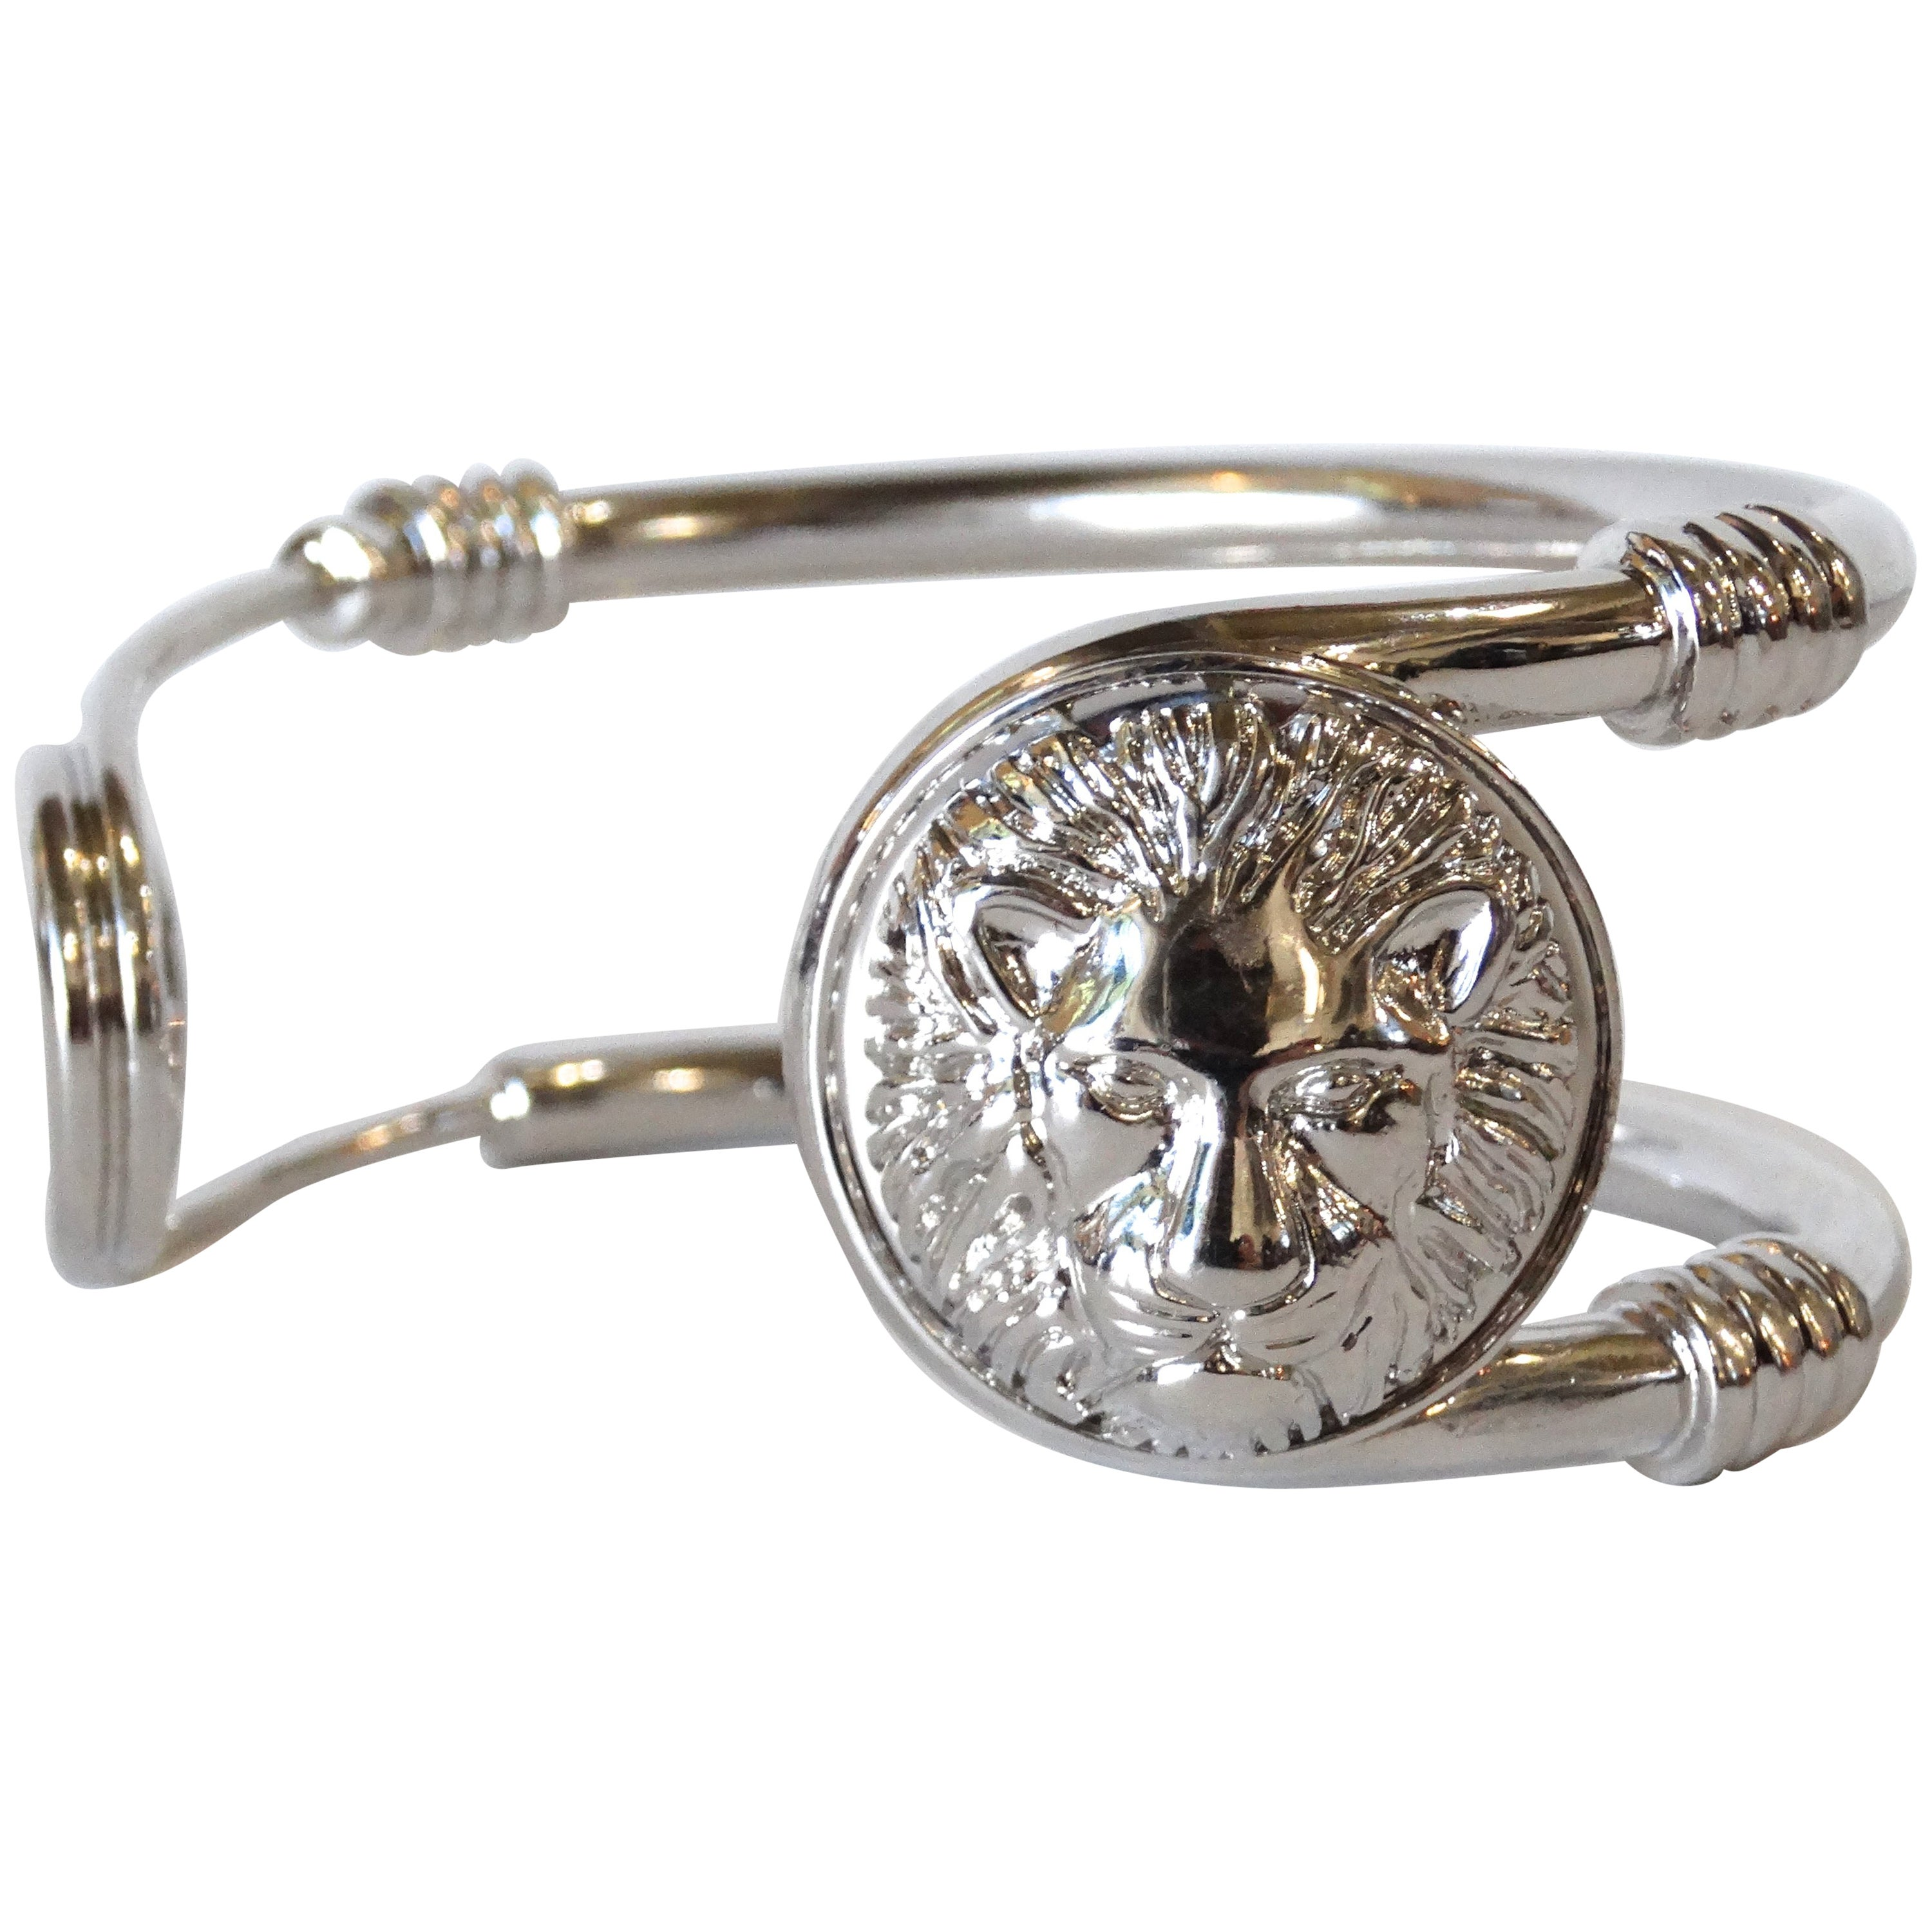 e33b76c39d2d2 Iconic 1990s Versus Versace Lion Saftey Pin Cuff Bracelet For Sale at  1stdibs